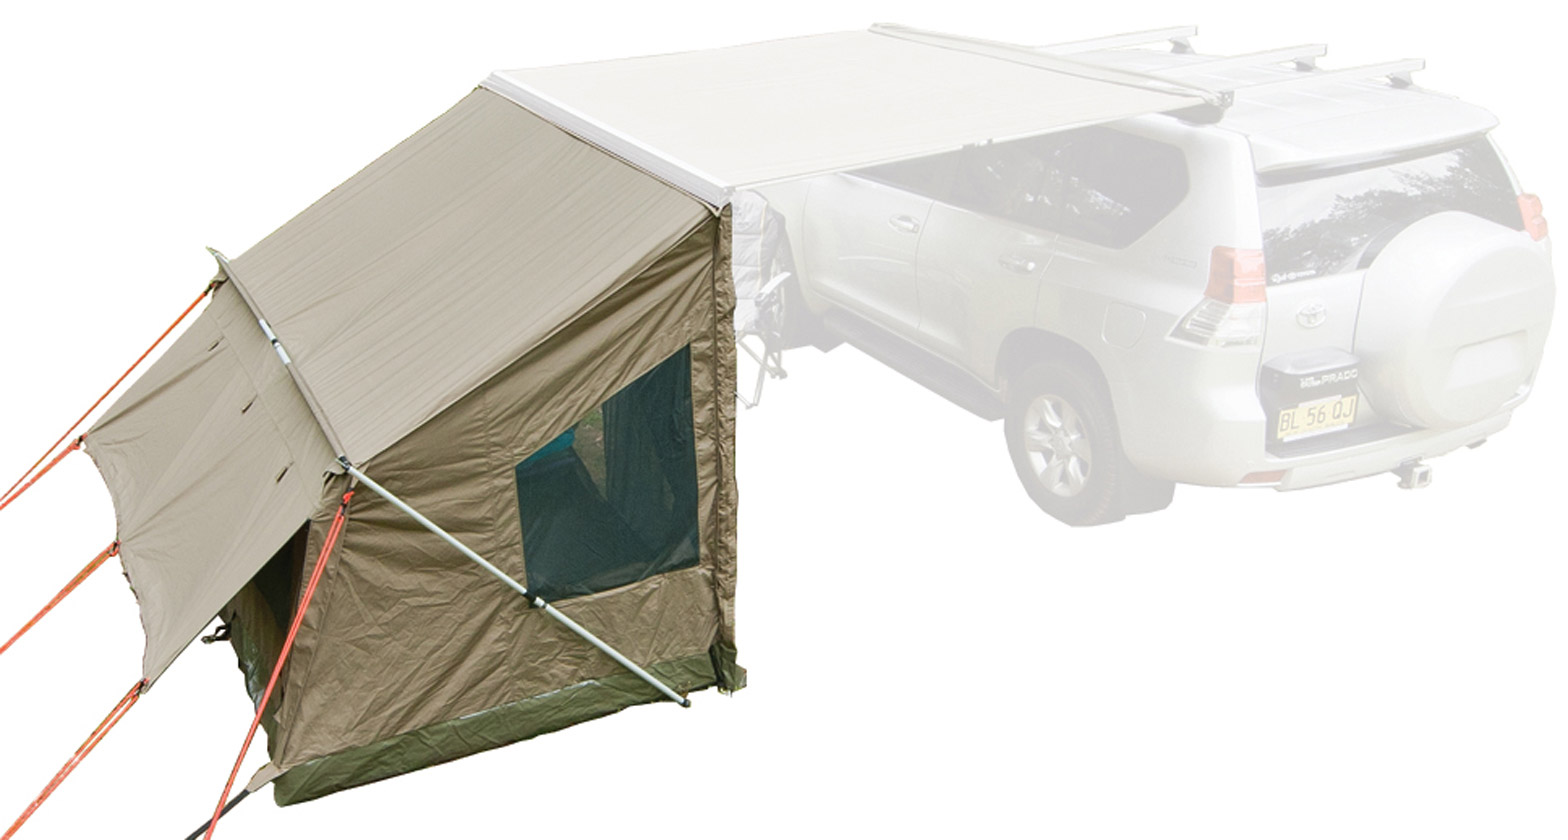 Tagalong Tent Rv5t Rhino Rack